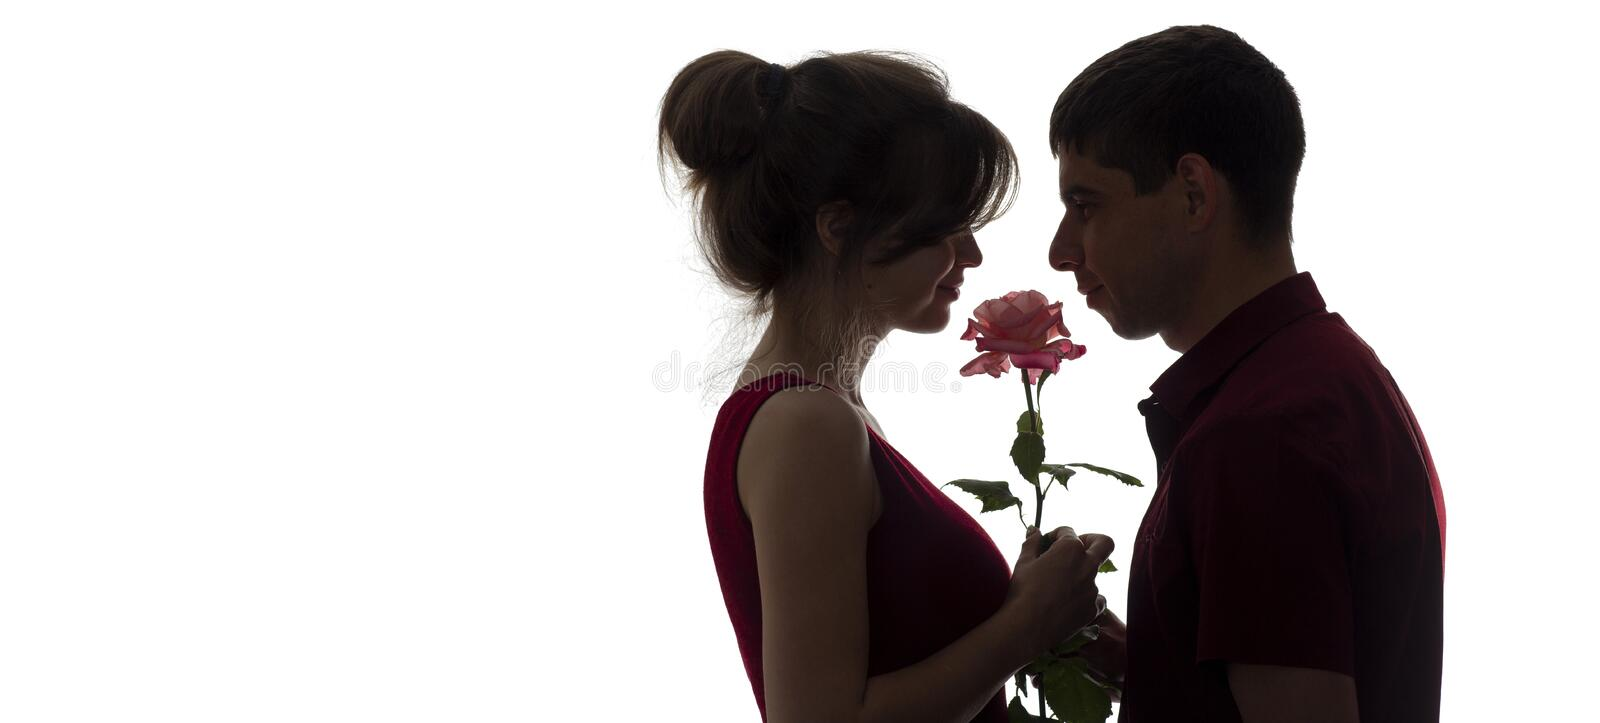 Silhouette profile of a young couple in love on white isolated background, man giving a woman a rose flower, concept love and stock image